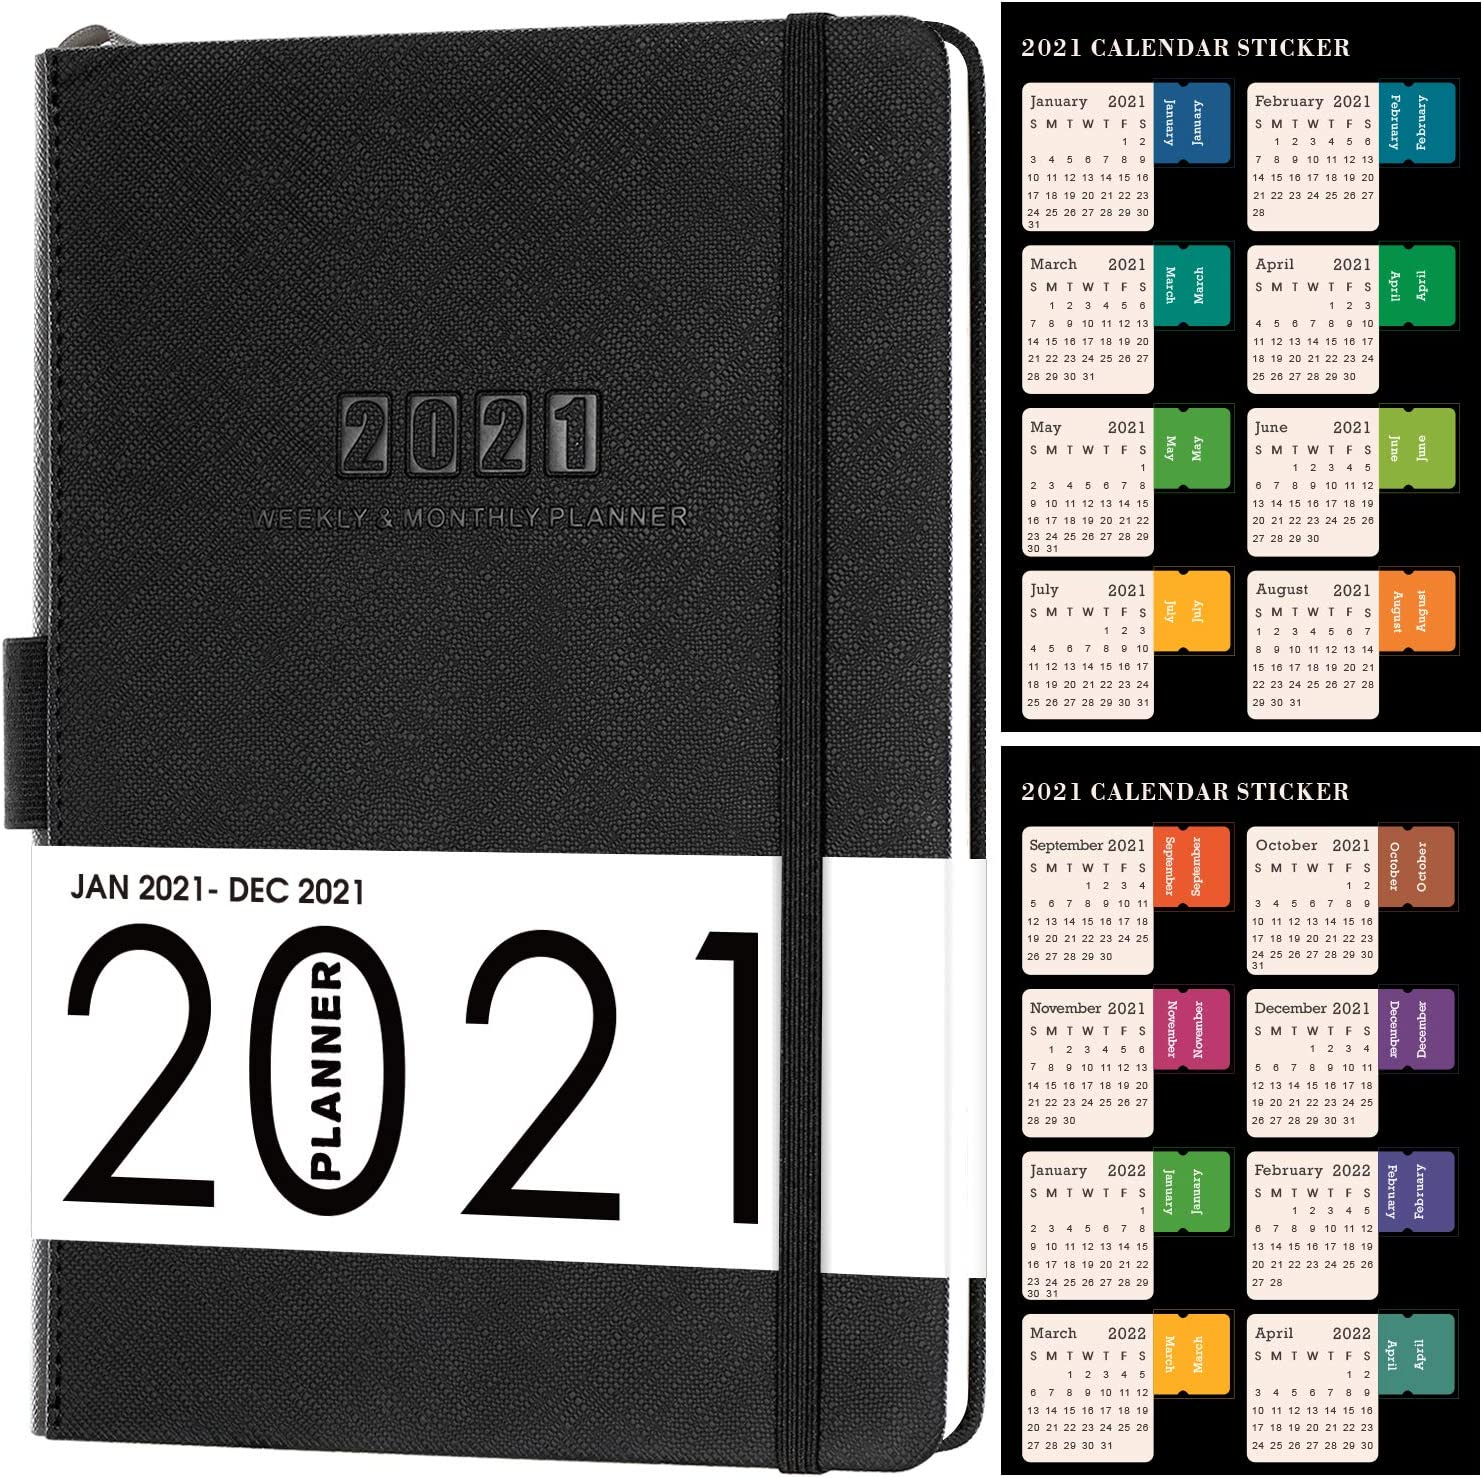 2021 Diary, Diary A5 Week to View Diary from Jan 2021 to Dec 2021 42% OFF £9.99 @ Amazon